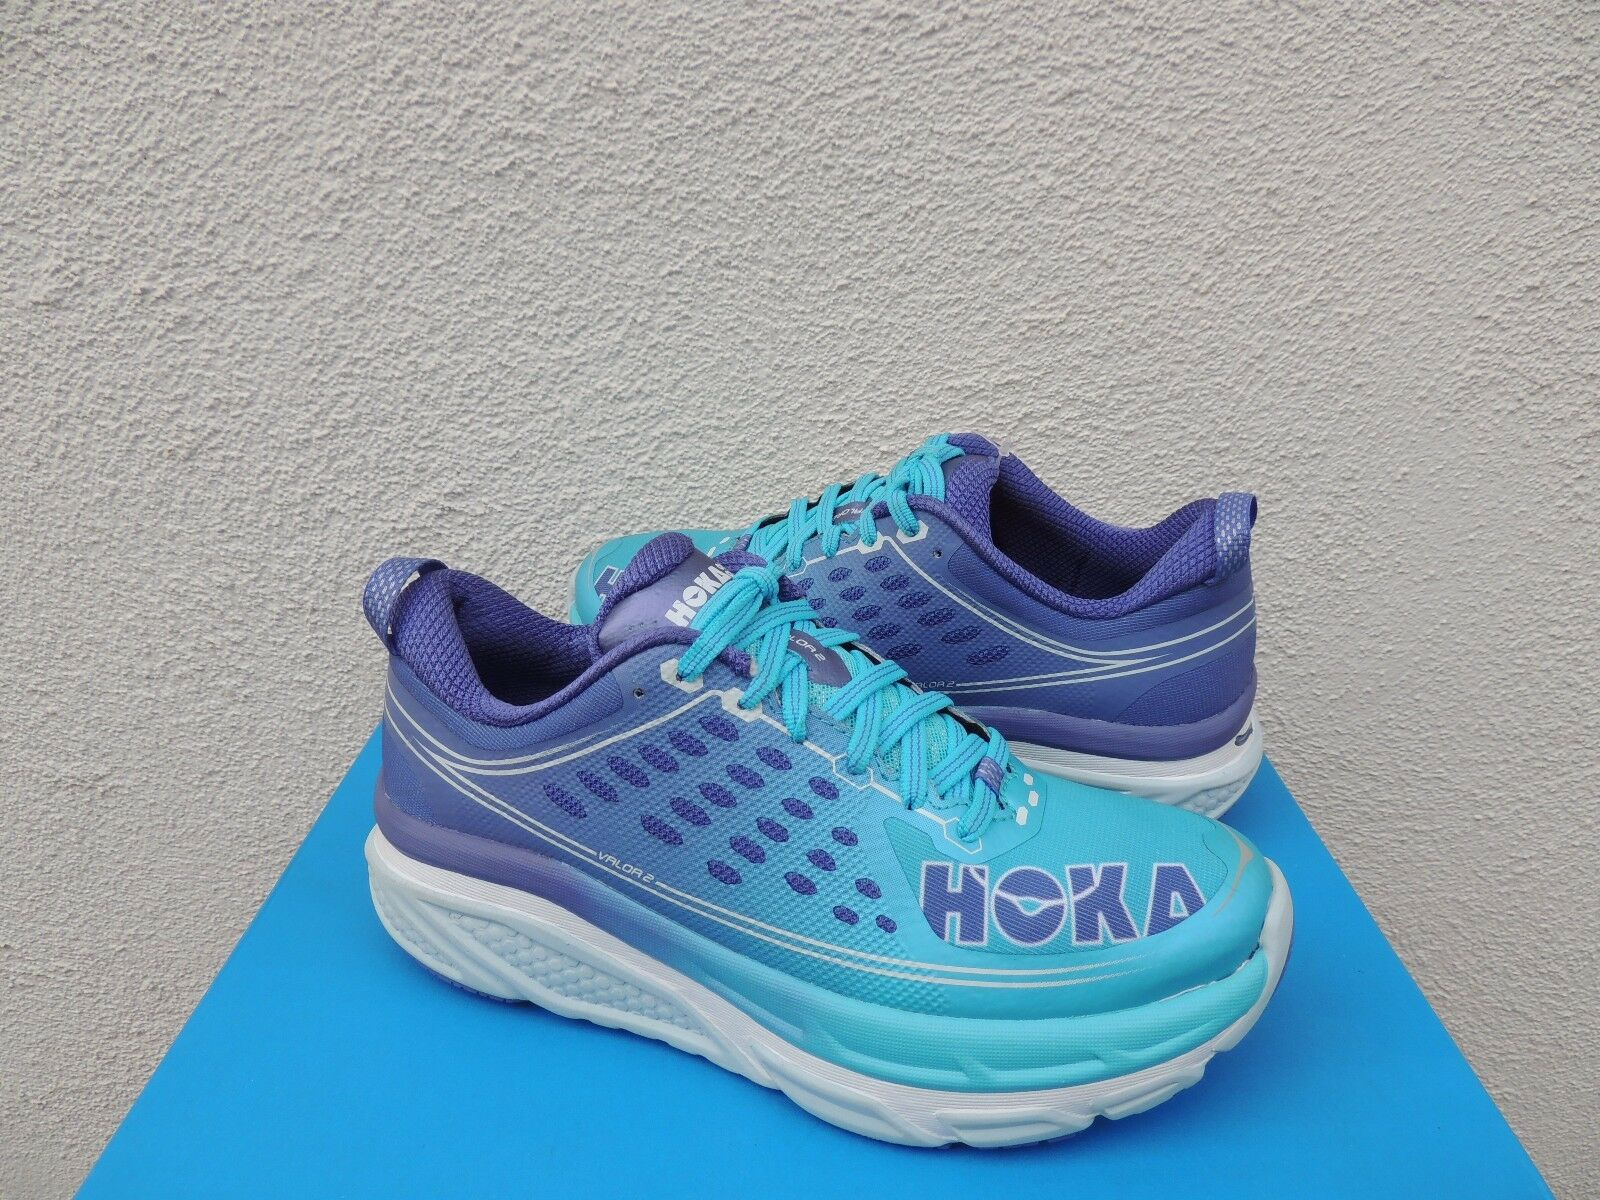 HOKA ONE ONE VALOR 2 blueE ATOLL  CORSICAN RUNNING SHOES, US 7  EUR 38 2 3 NWT